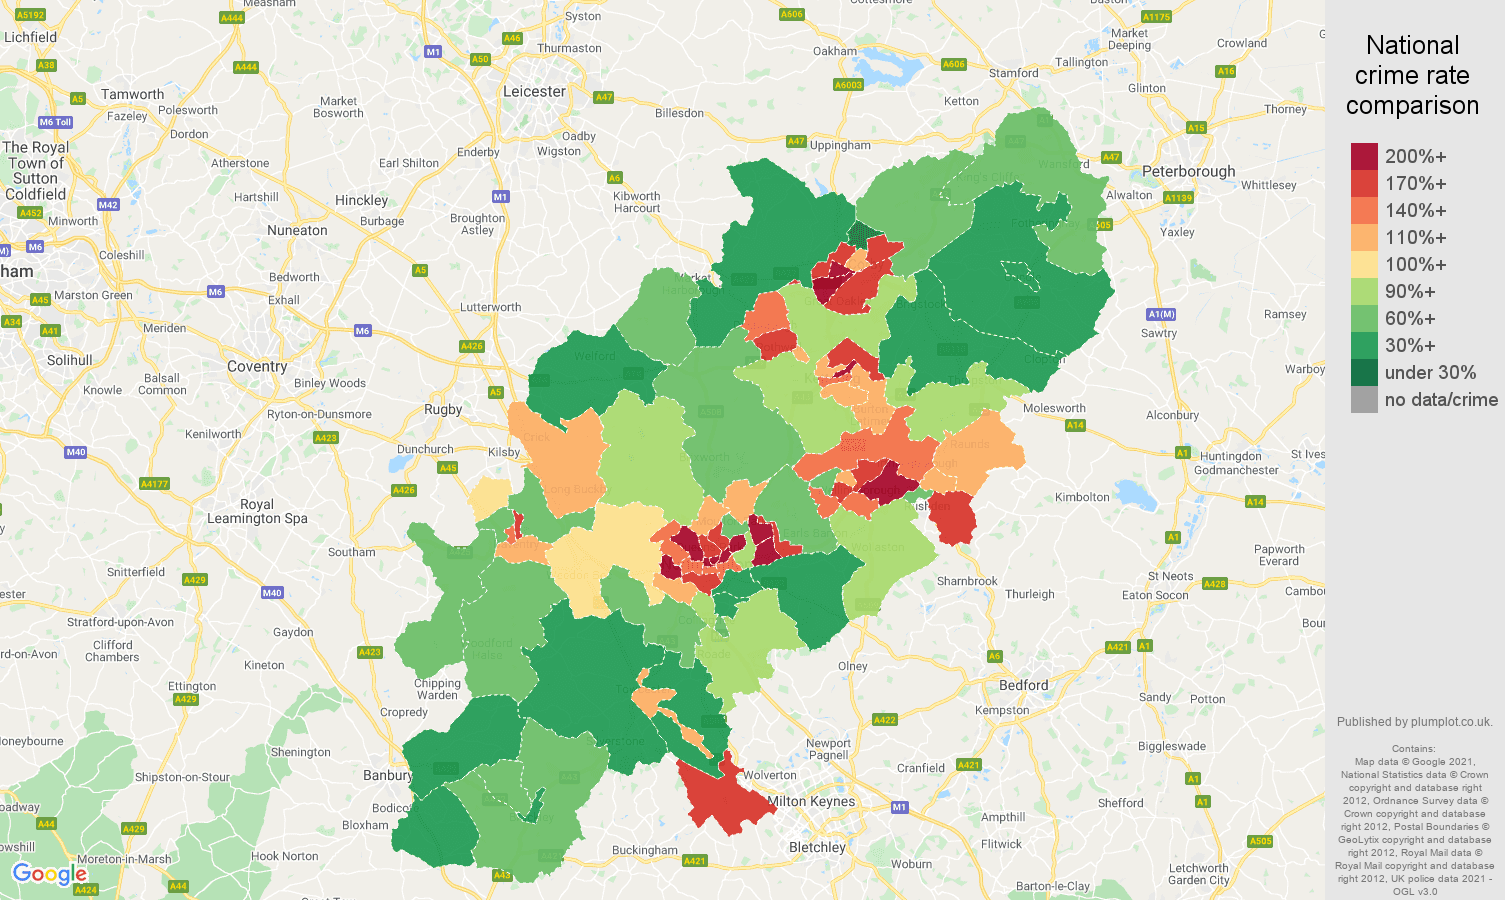 Northamptonshire violent crime rate comparison map